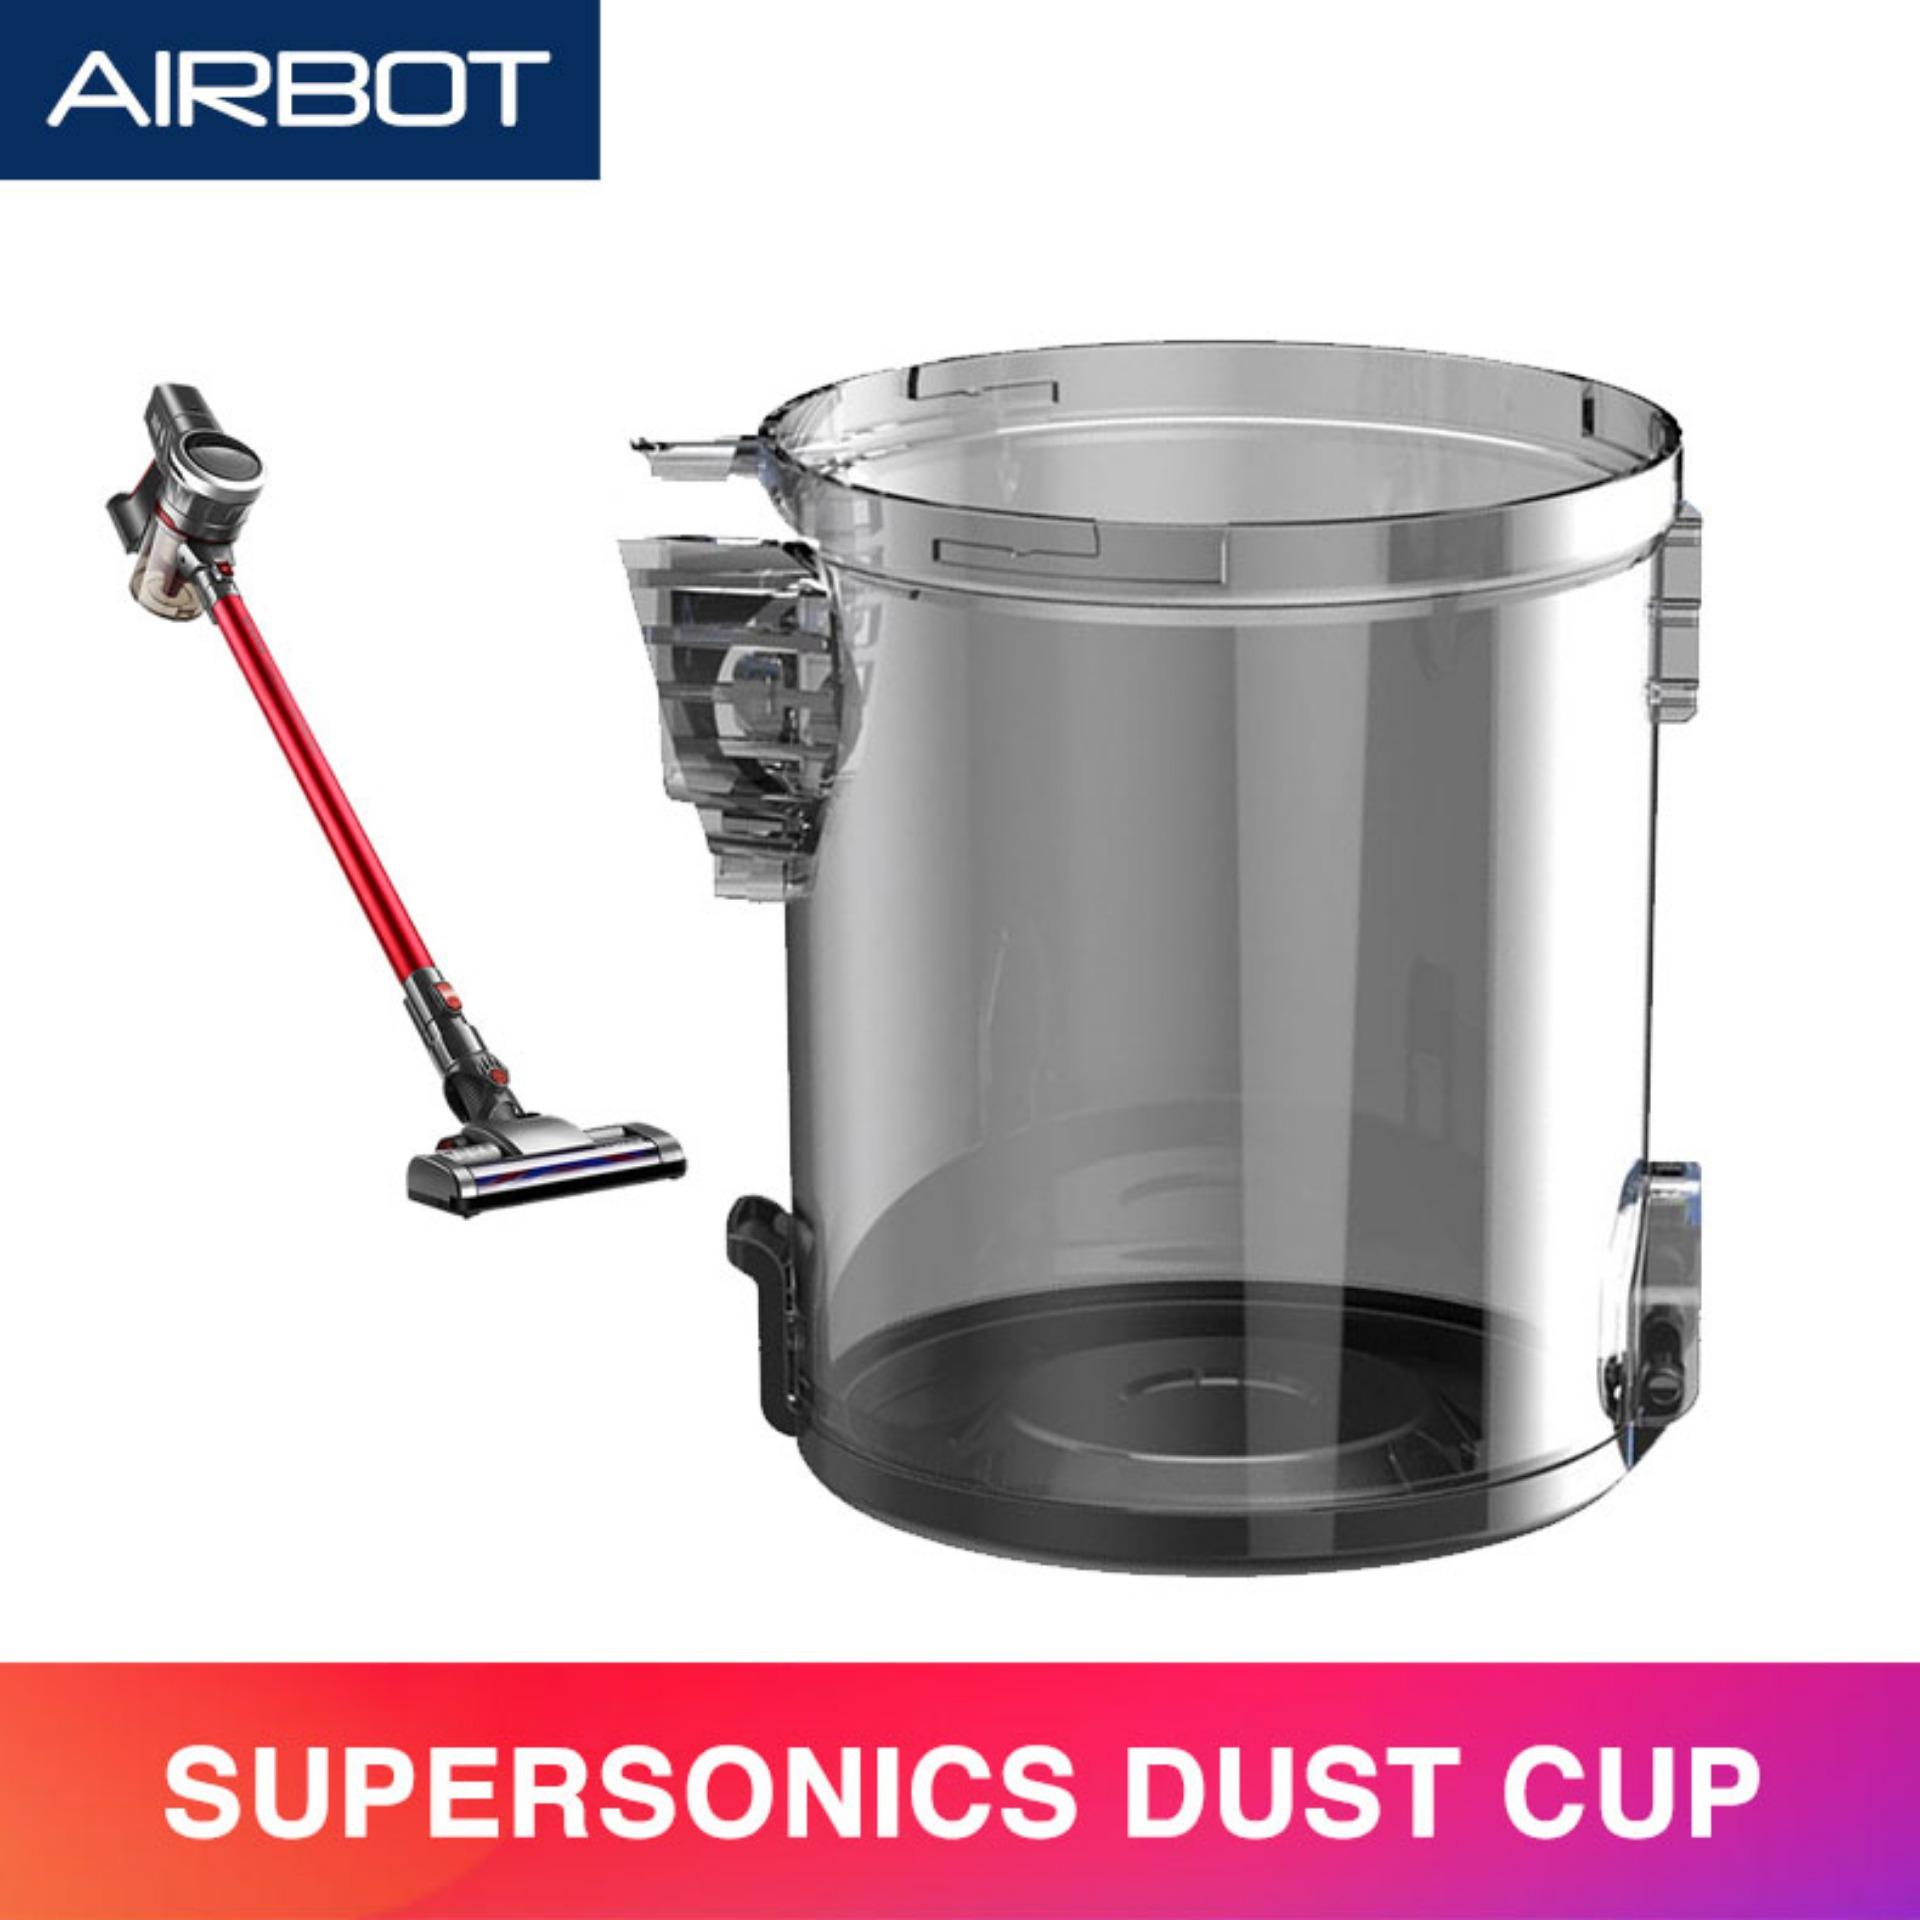 [ Accessories ] Airbot Supersonics Dust Bin Spare Parts Replacement.